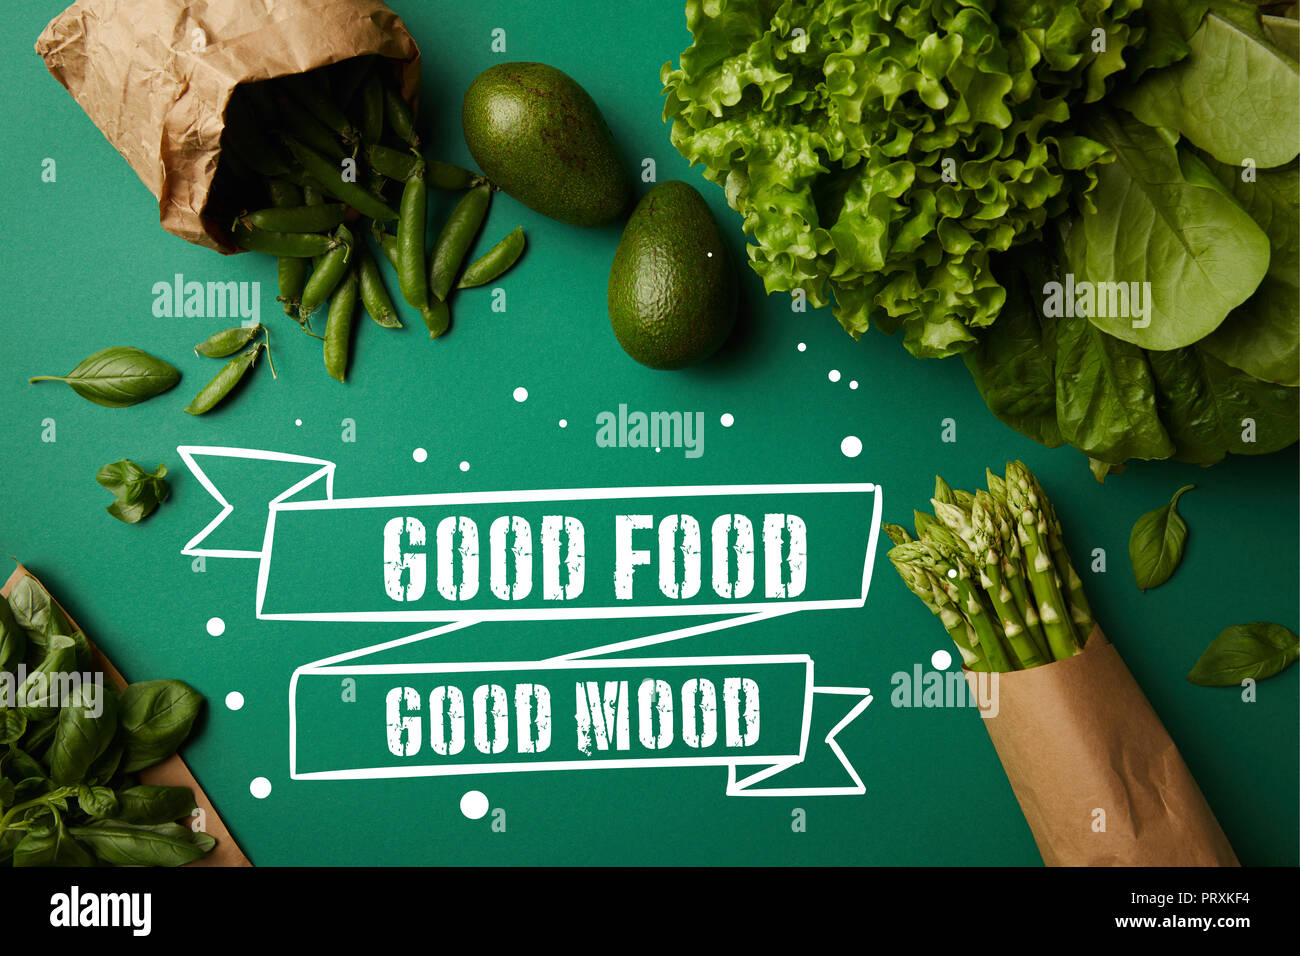 top view of different green ripe vegetables on green surface with 'good food - good mood' inspiration - Stock Image